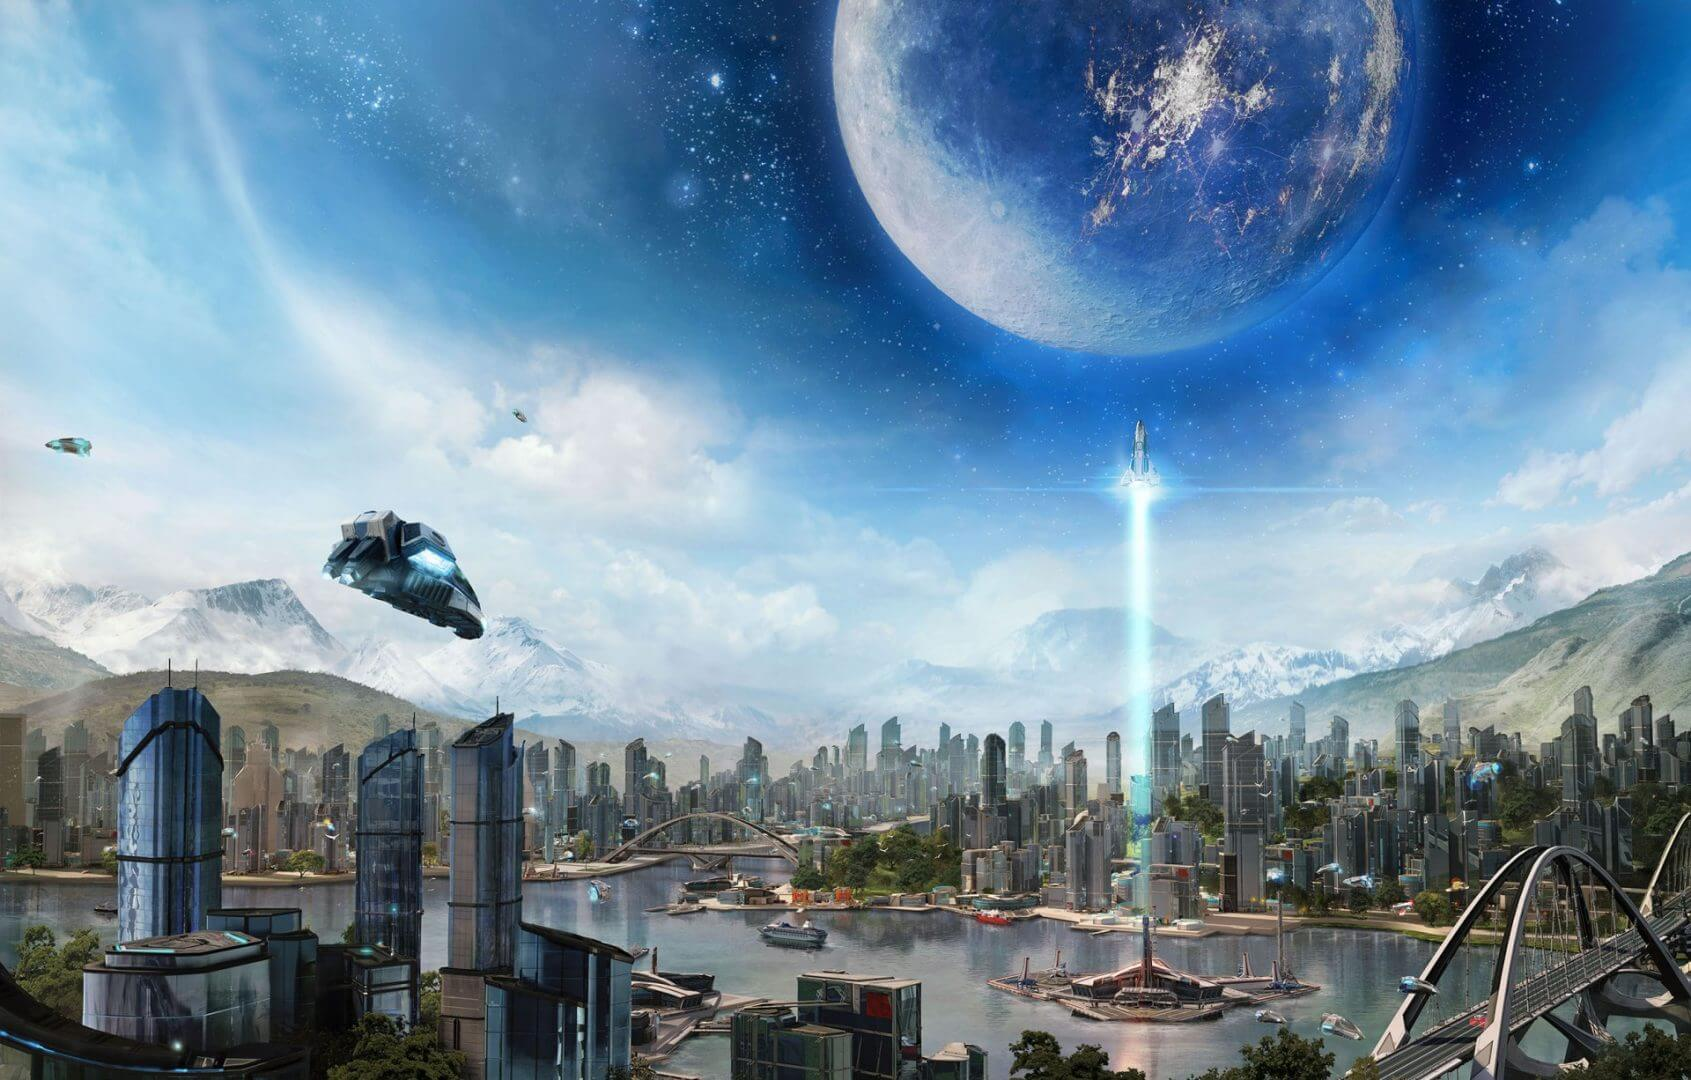 'Anno 2205': Building On Earth And The Moon